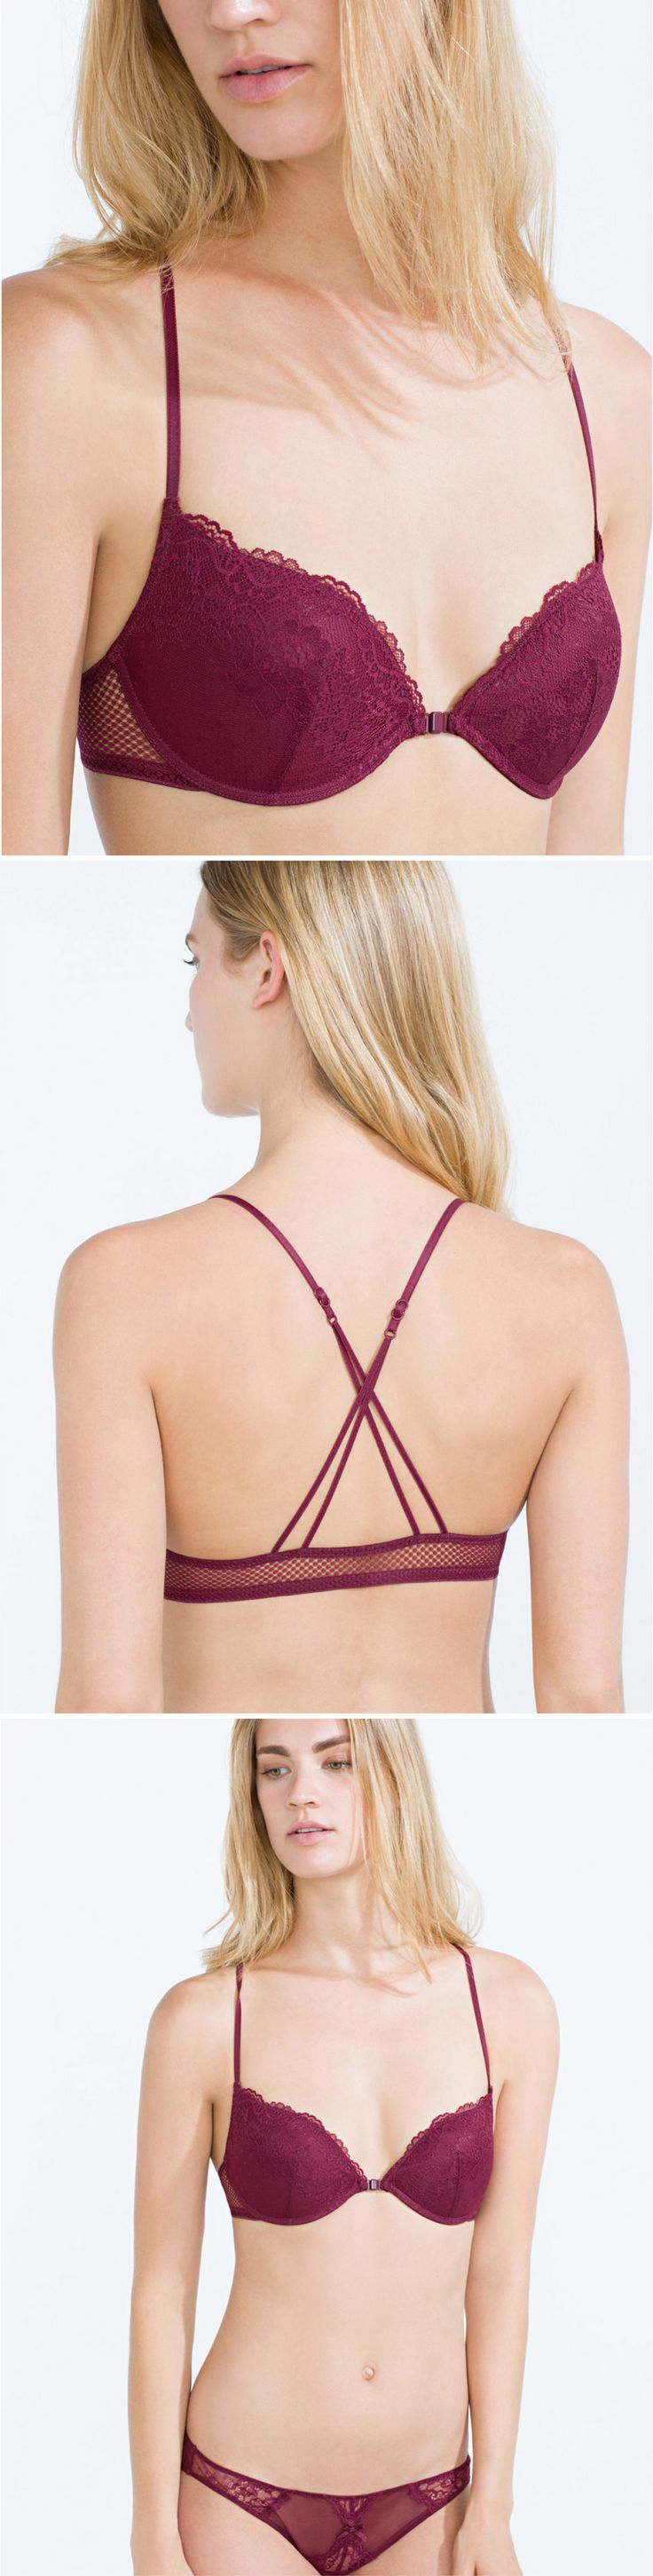 Burgundy sensual lace push up bra with criss cross back